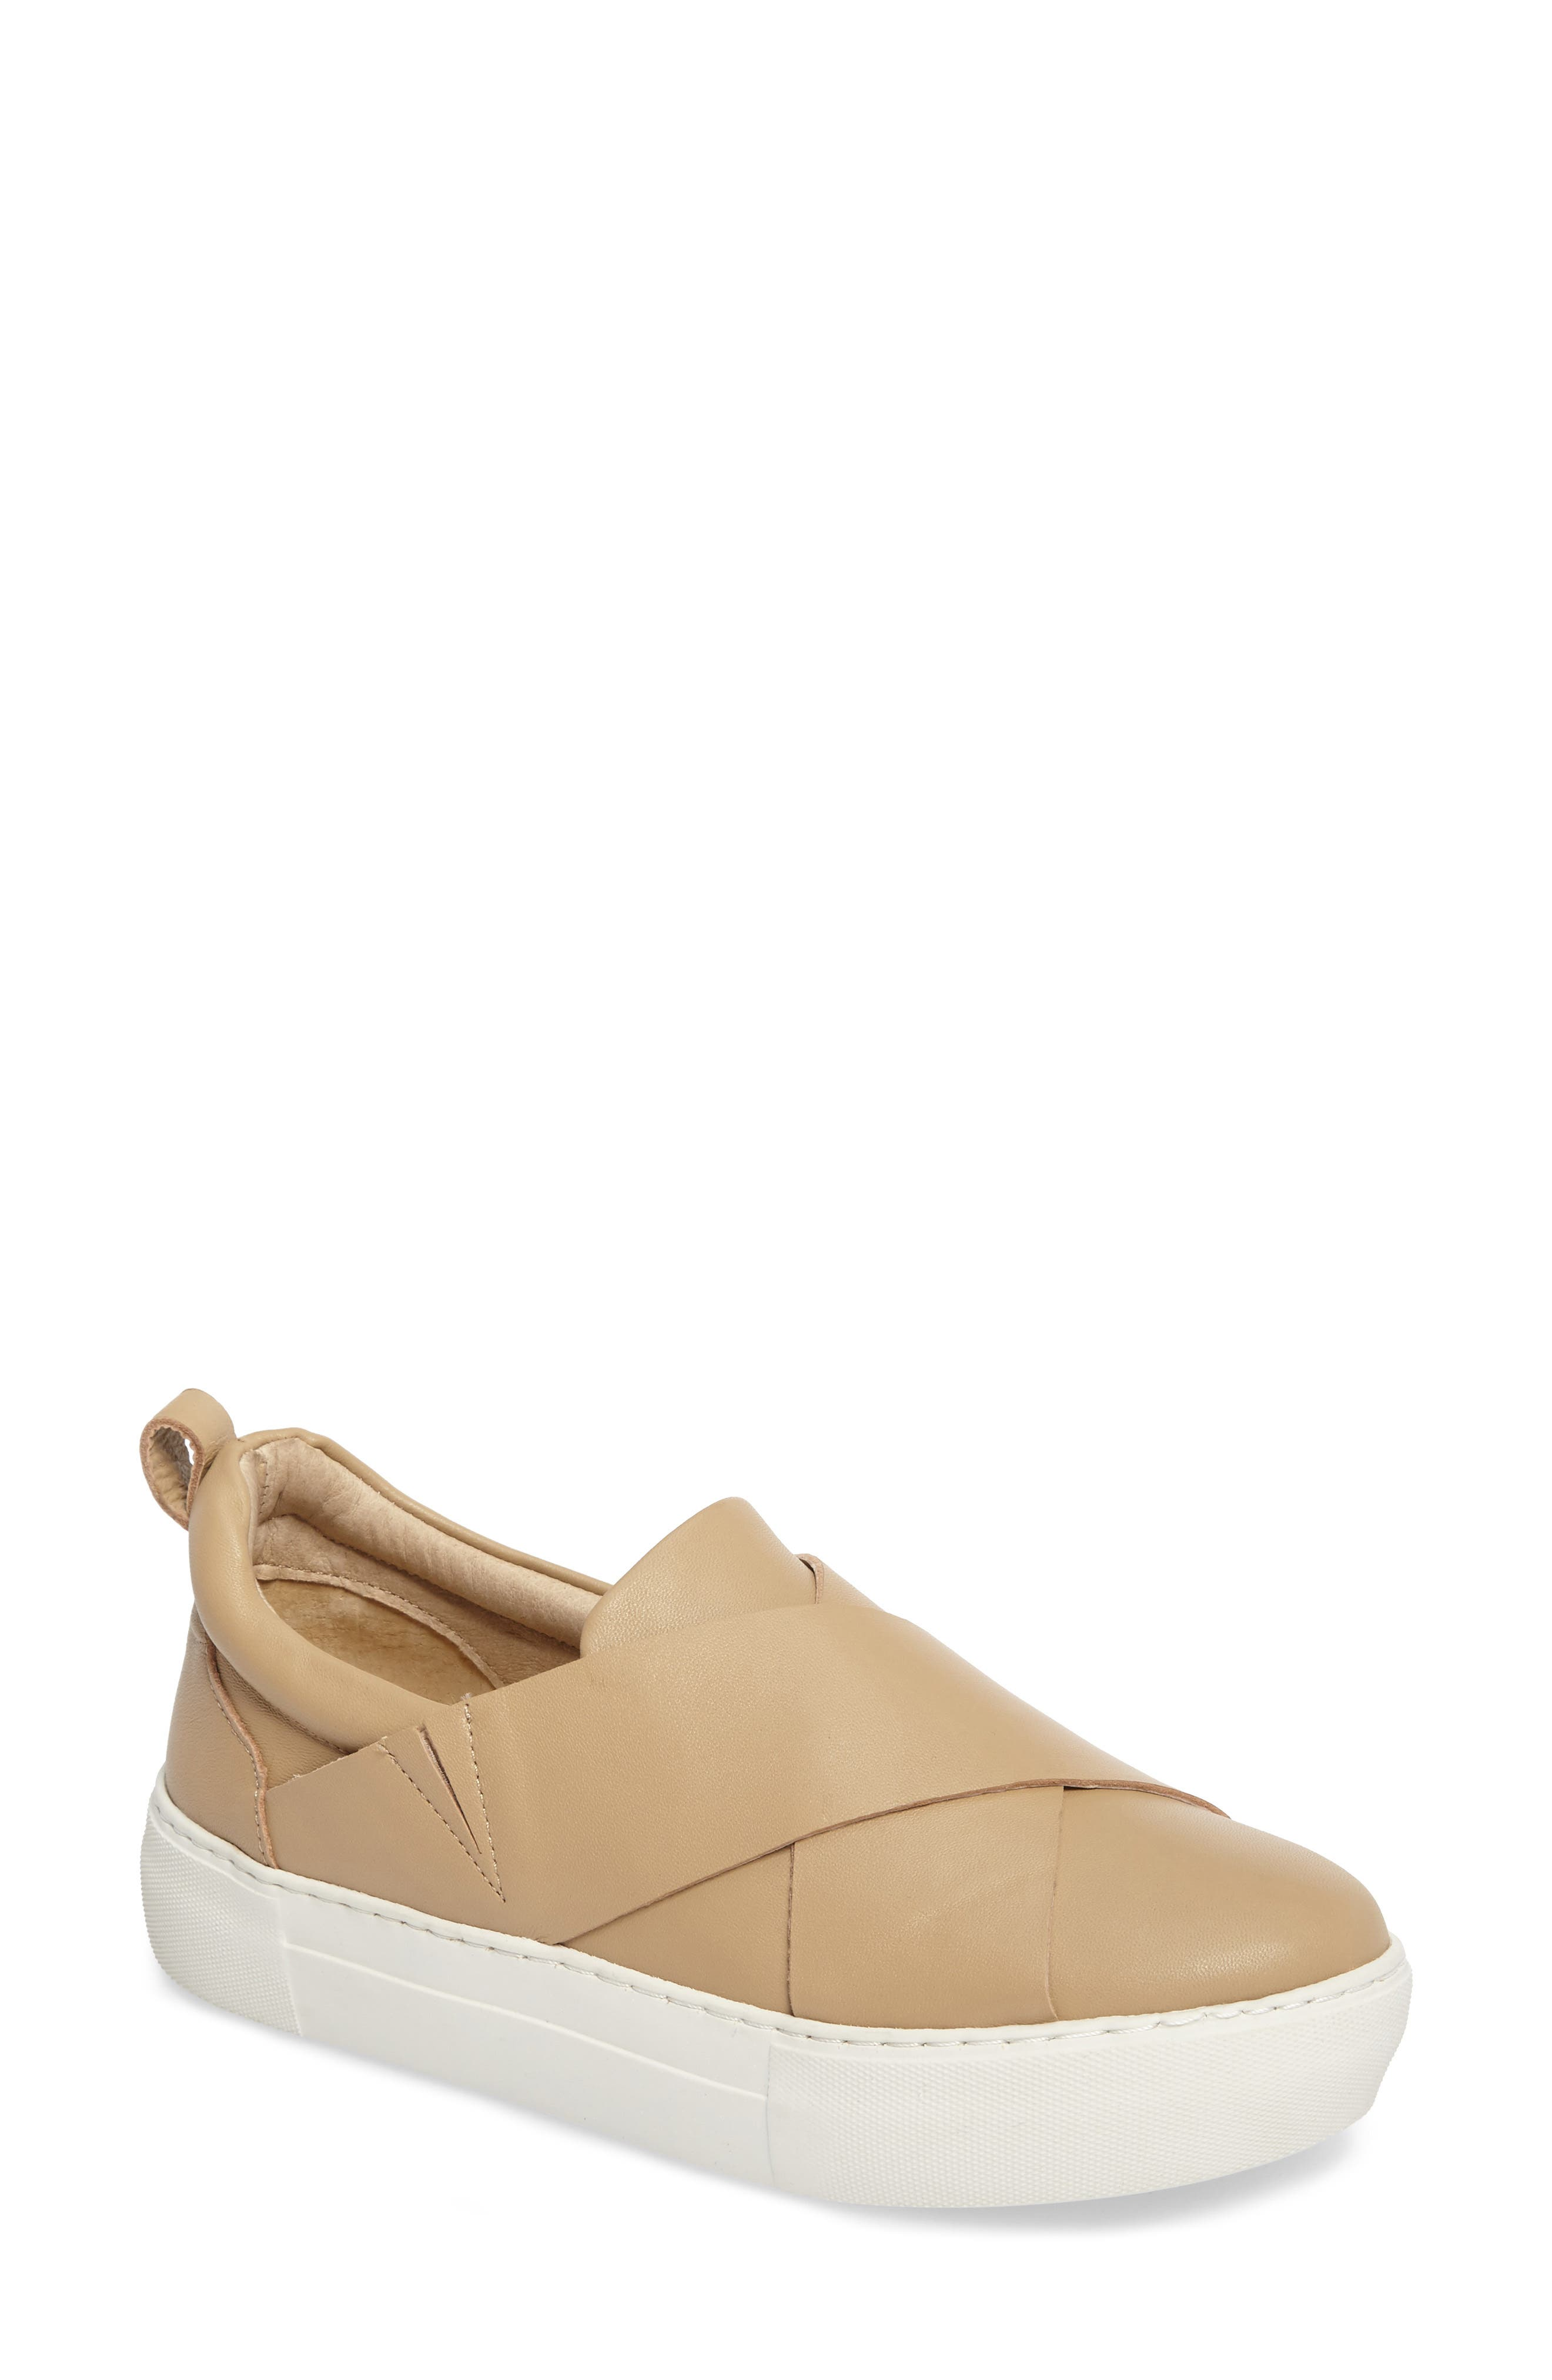 Alec Slip-On Sneaker,                             Main thumbnail 1, color,                             Sand Leather